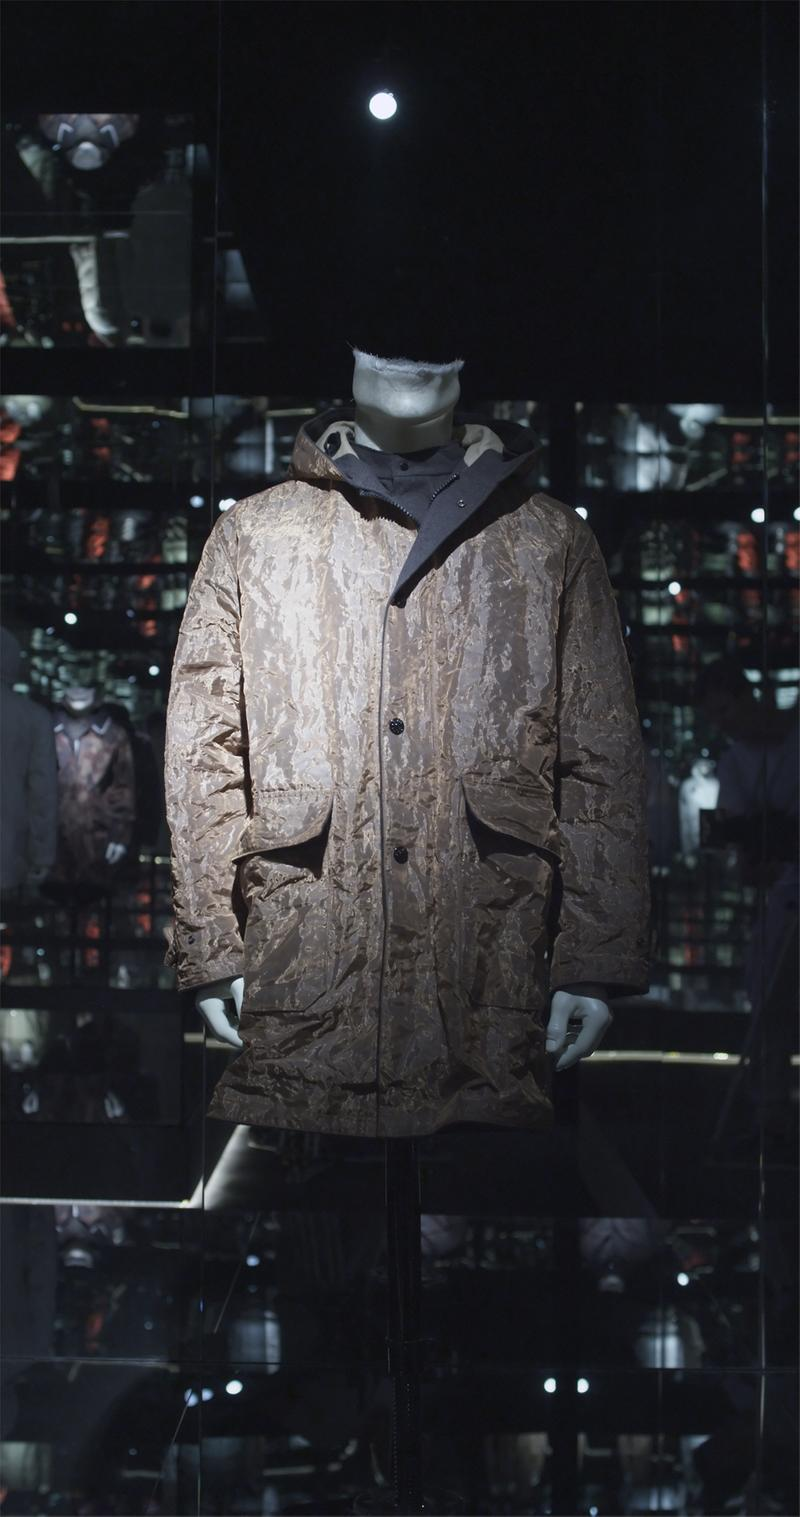 Brown hood jacket with dark lining, button closure and flap pockets, displayed on mannequin bust